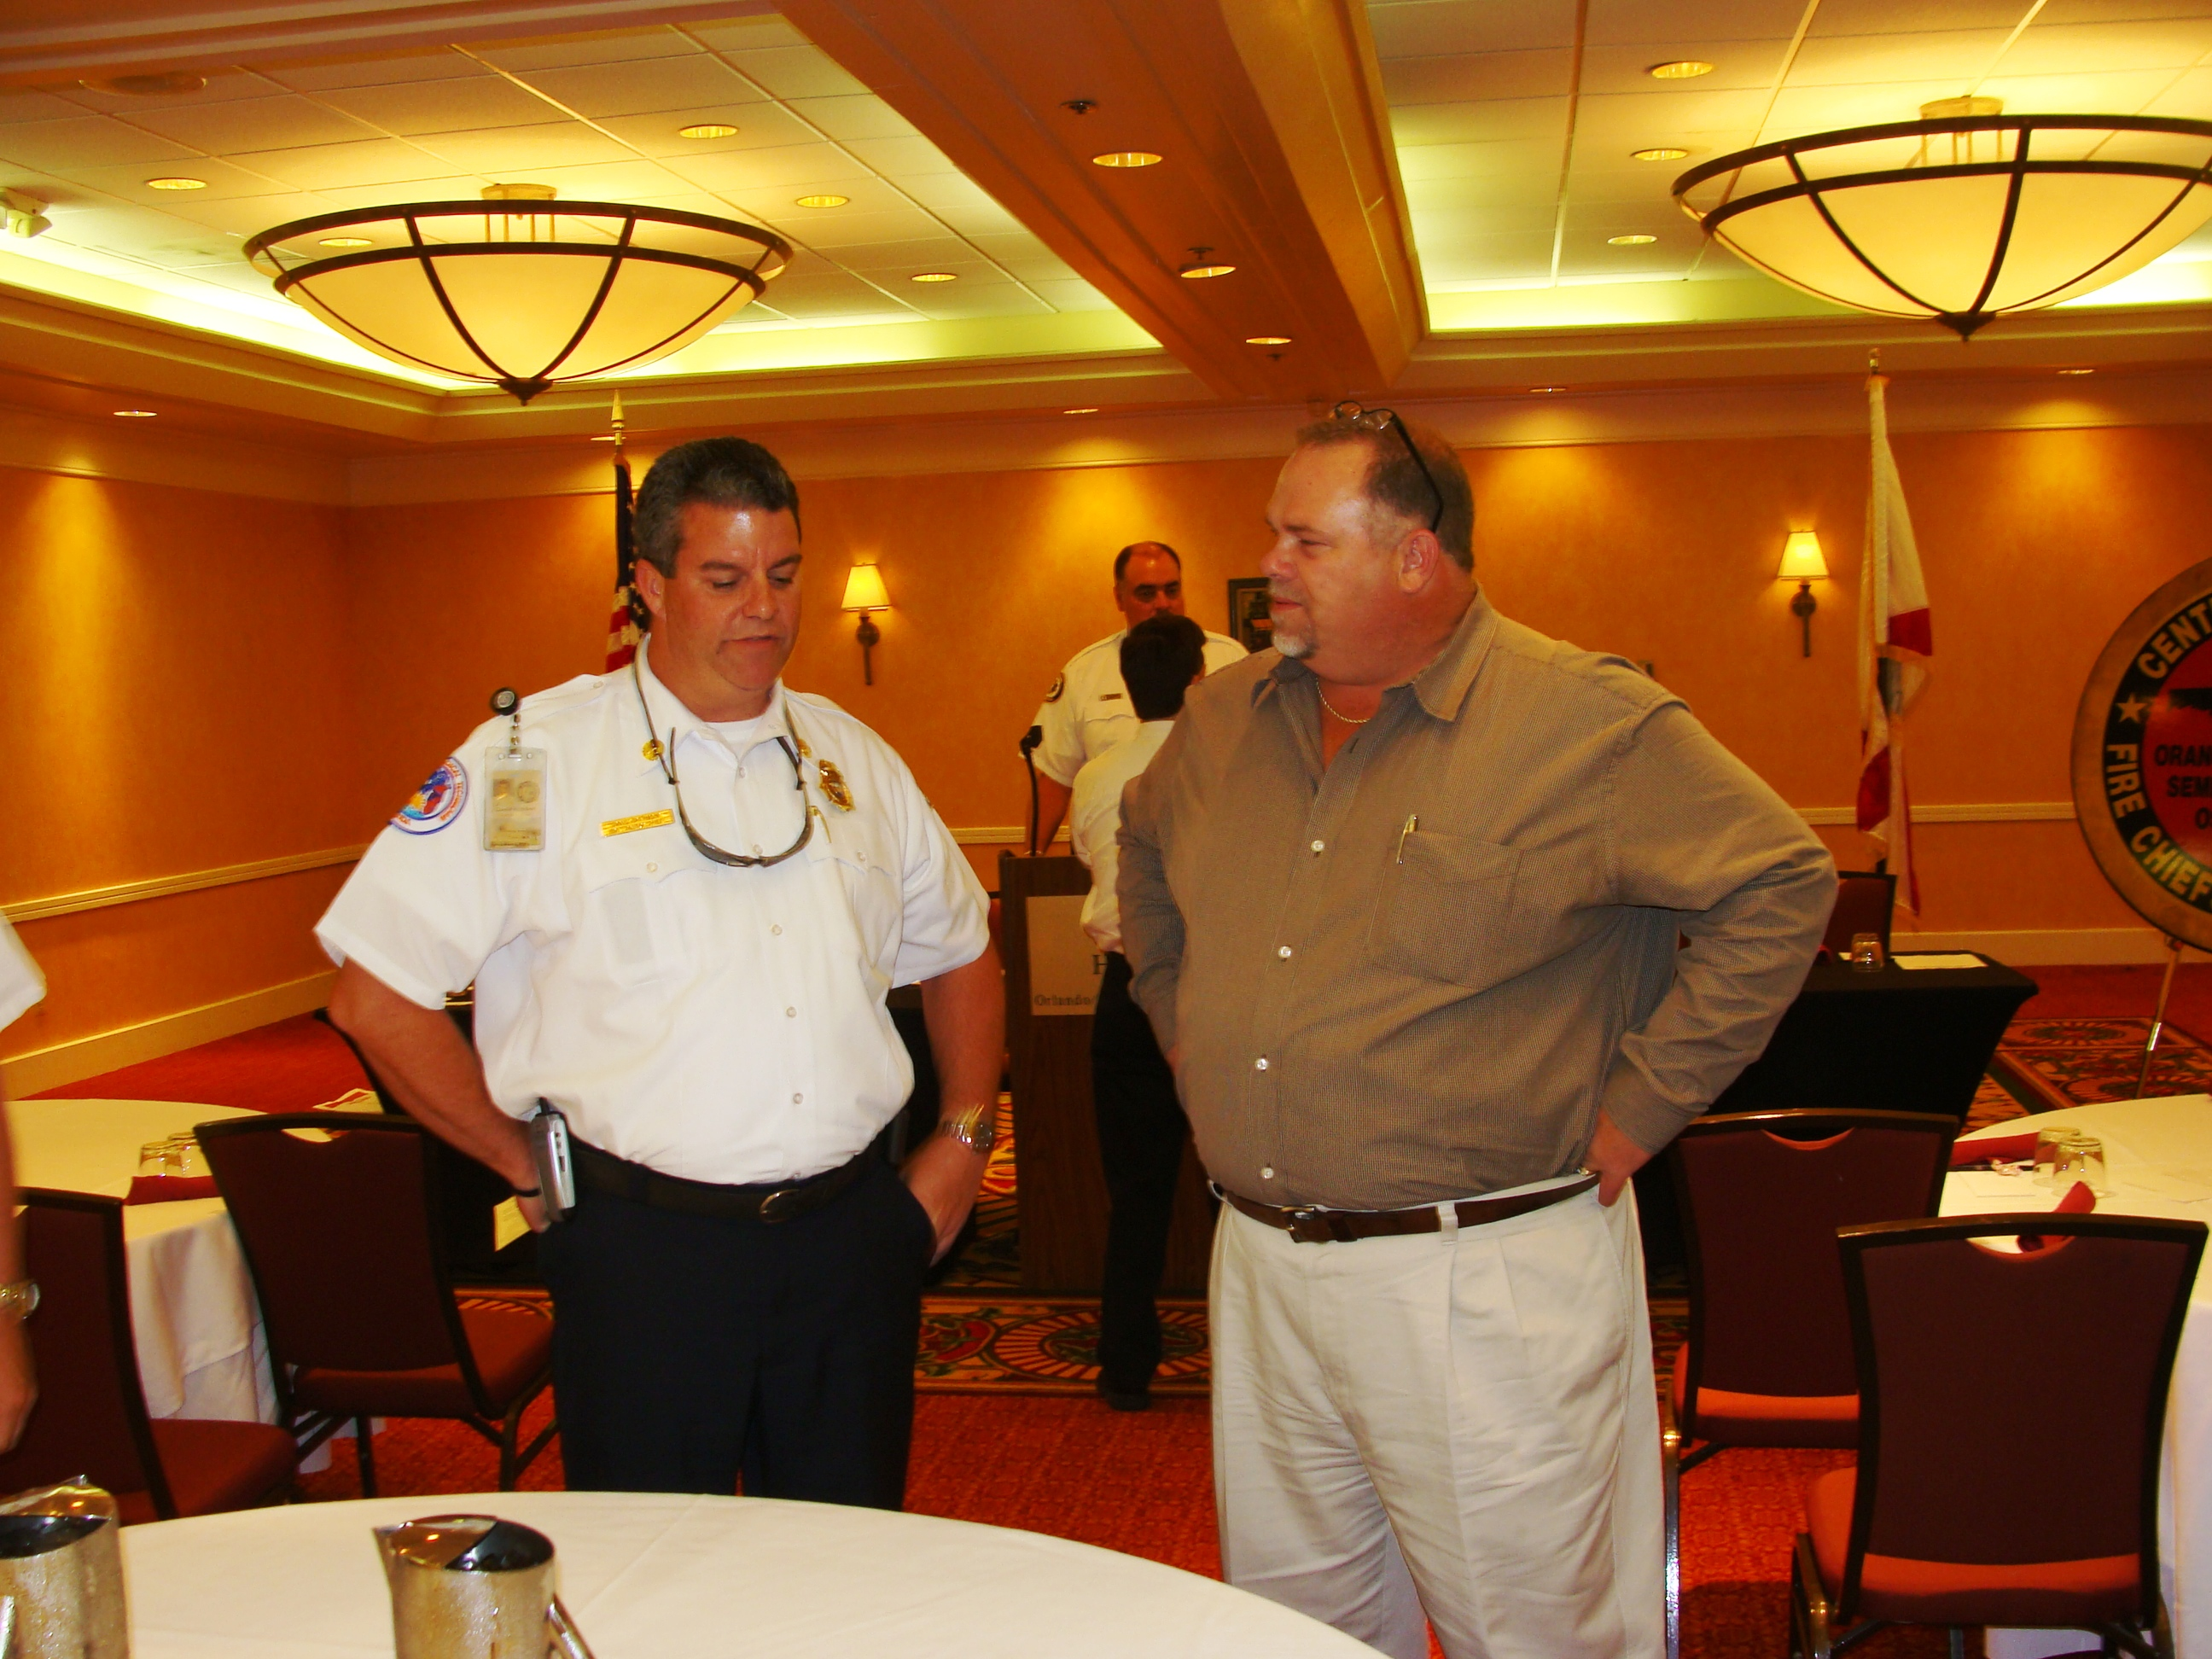 June 12th, 2008 MEETING - NFPA 1901